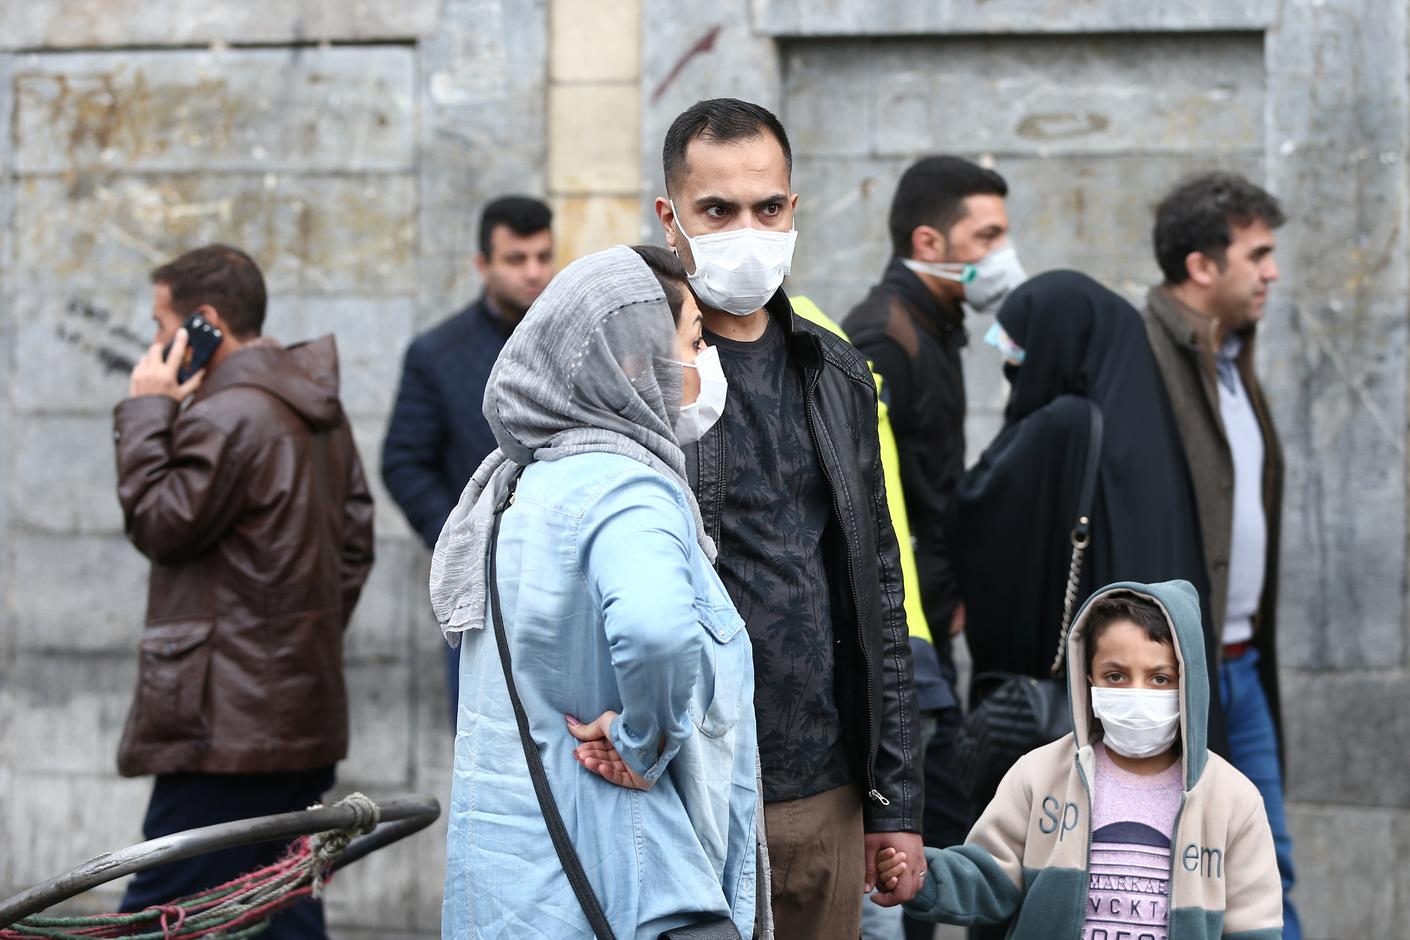 Ten new cases of coronavirus in Iran, two dead: officials